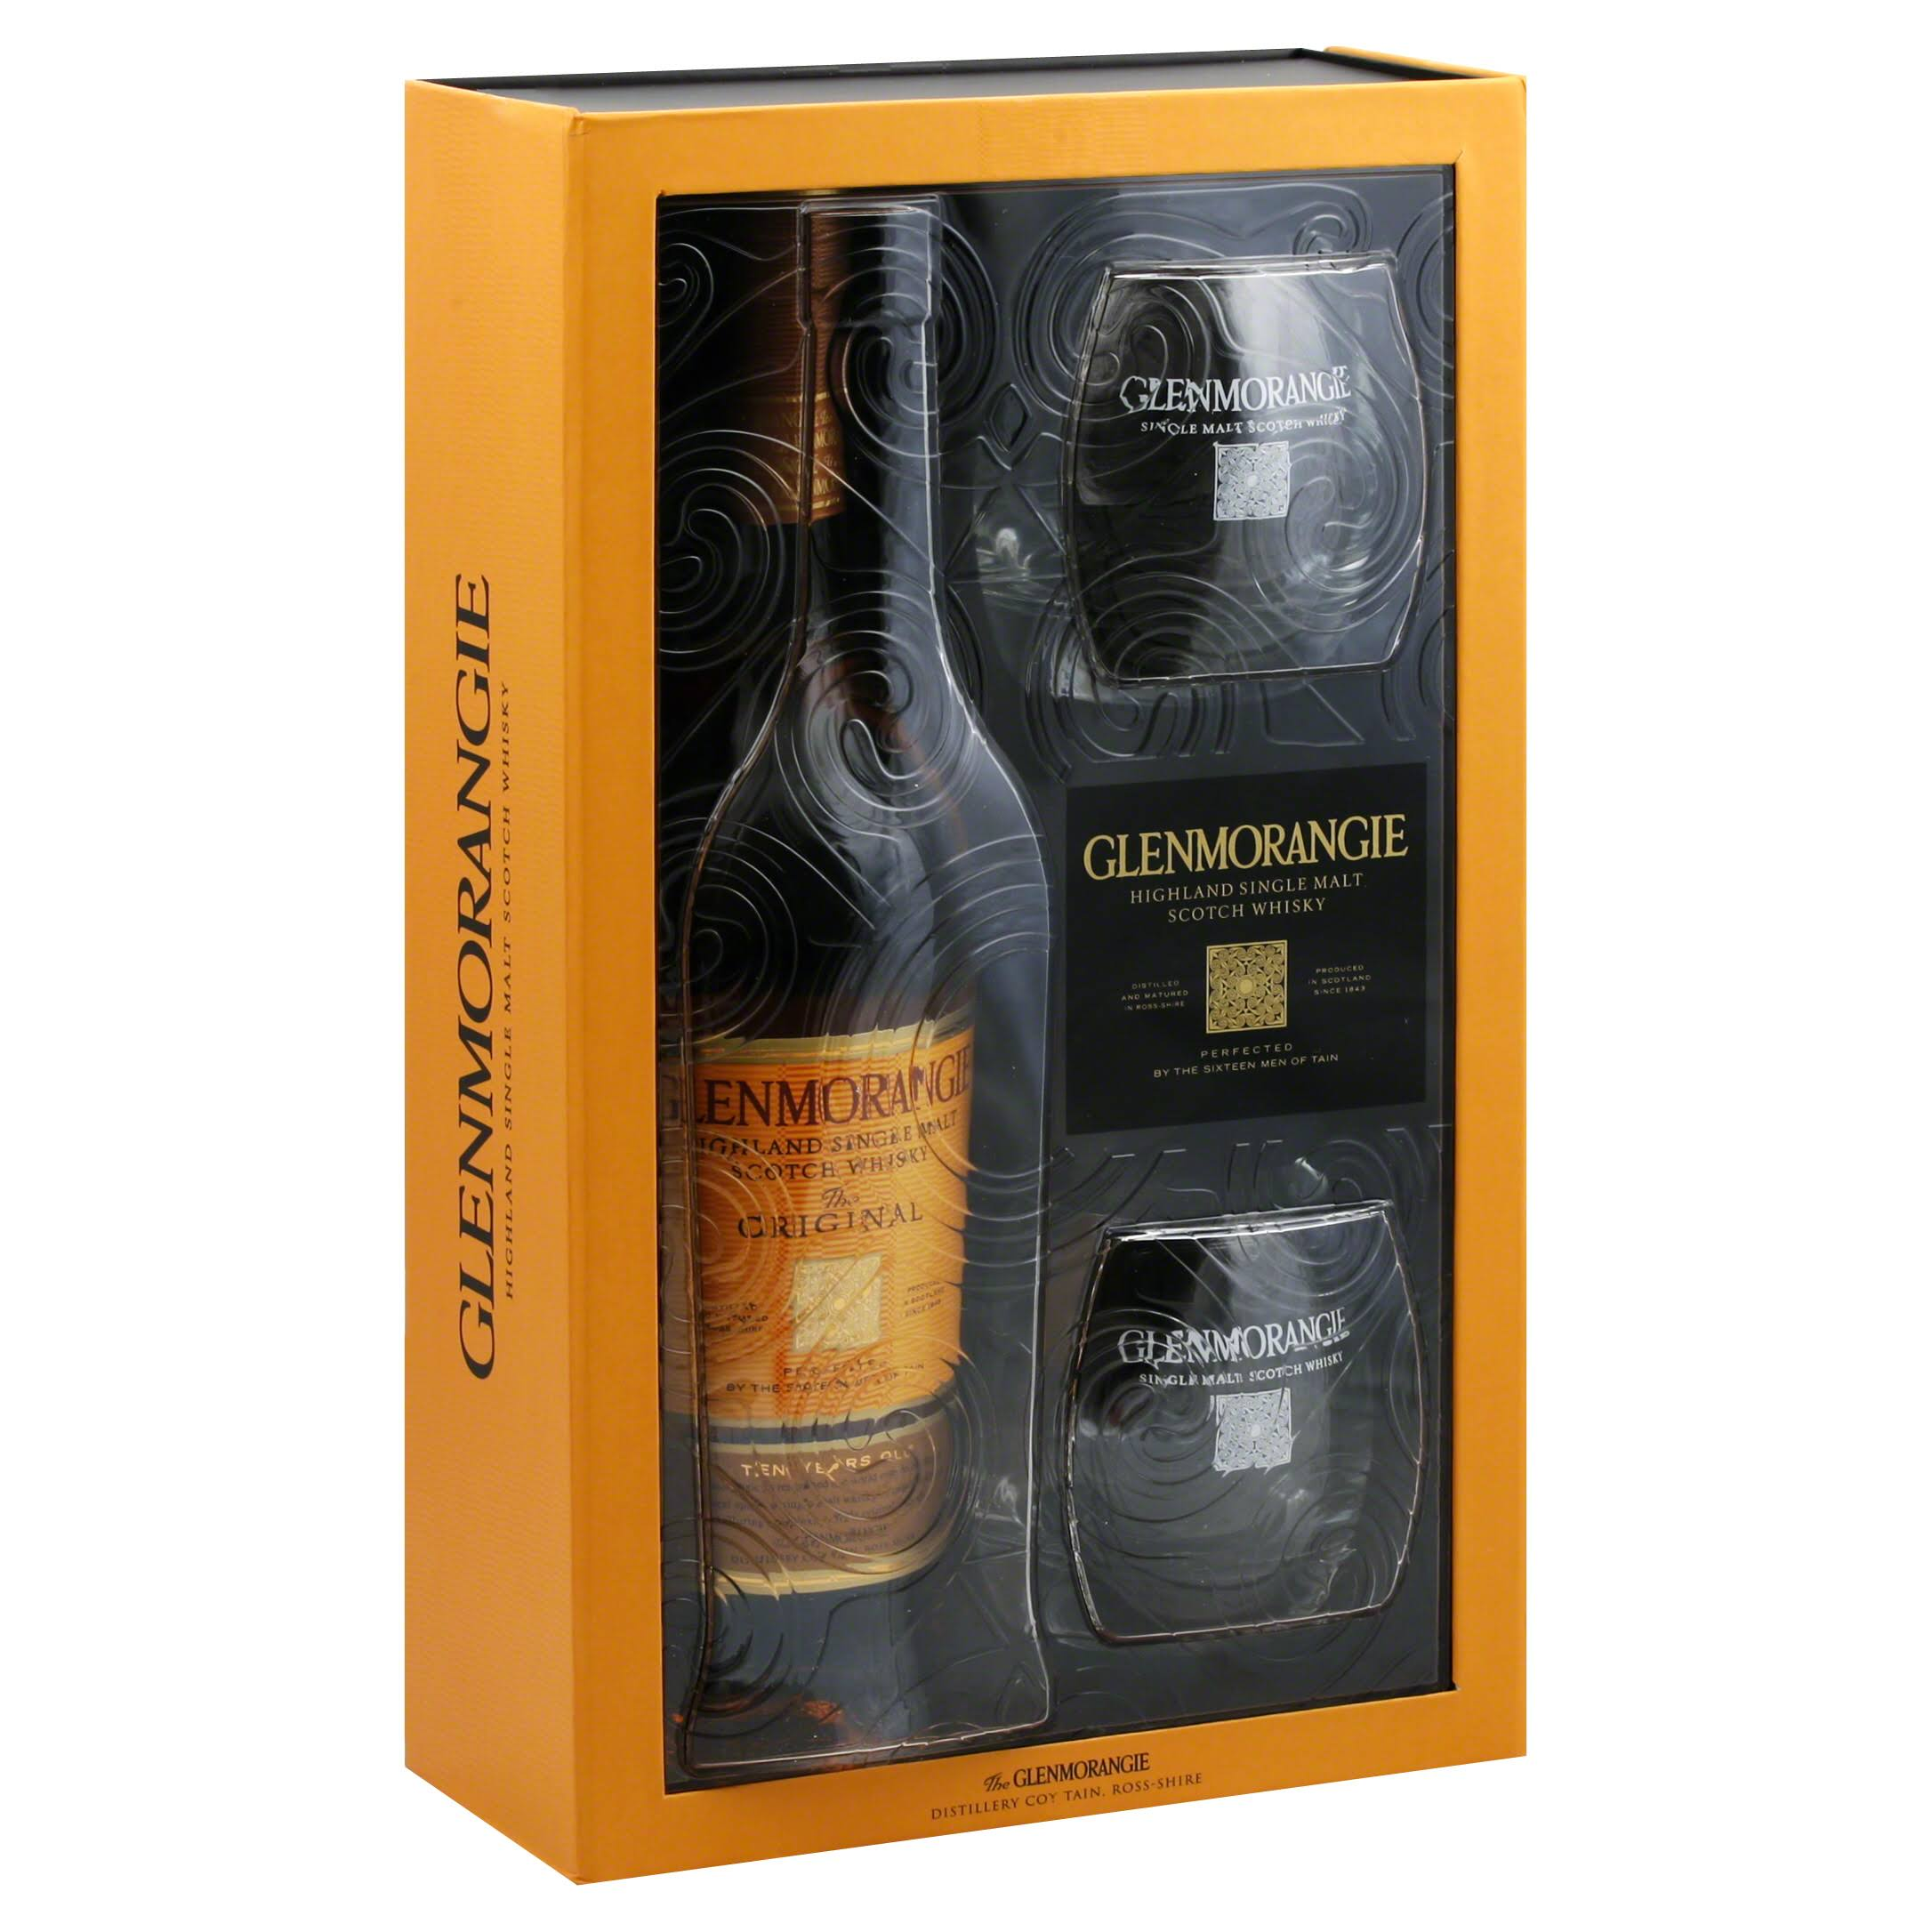 Glenmorangie Whisky Highland Single Malt Scotch - 1l